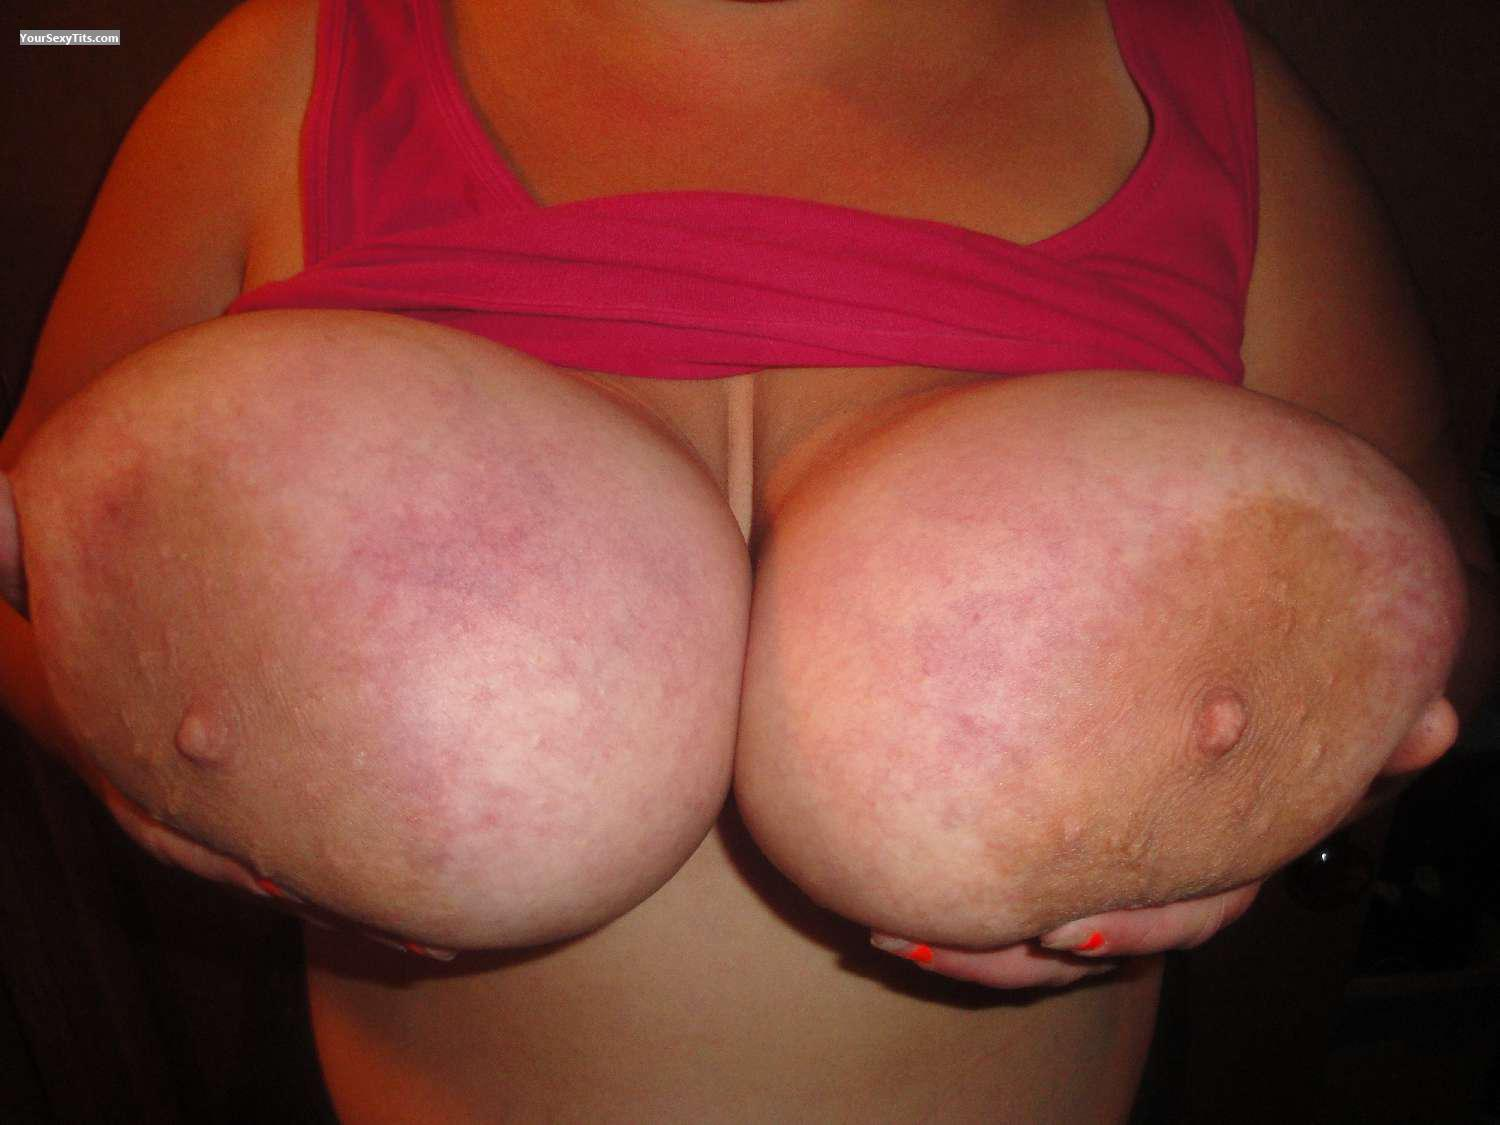 Extremely big Tits Of My Wife Wifes Big Boobs